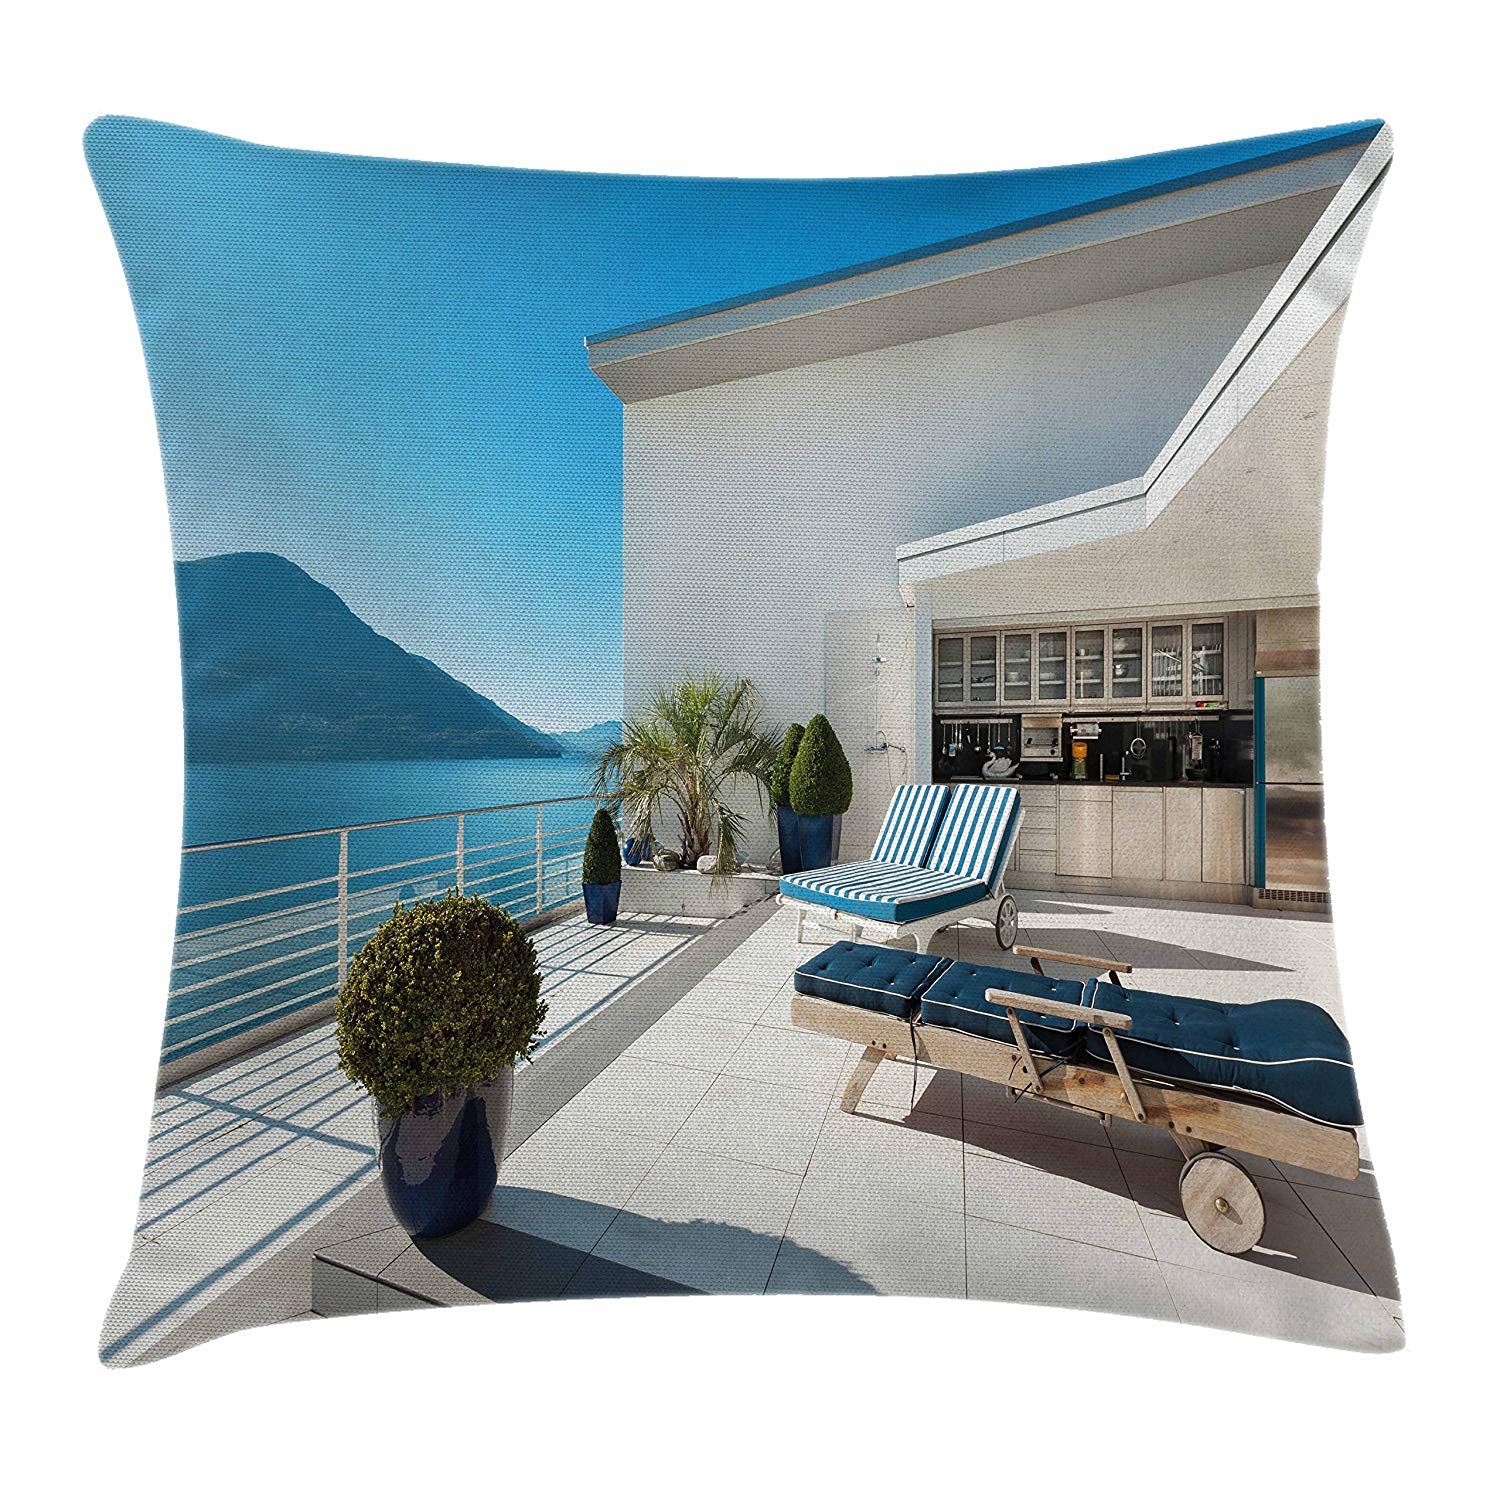 Modern Throw Pillow Cushion Cover by Lunarable, Contemporary Apartment with Veranda Ocean Modern House Empty and Serene, Decorative Square Accent Pillow Case, 26 X 26 Inches, White Dark Blue Blue